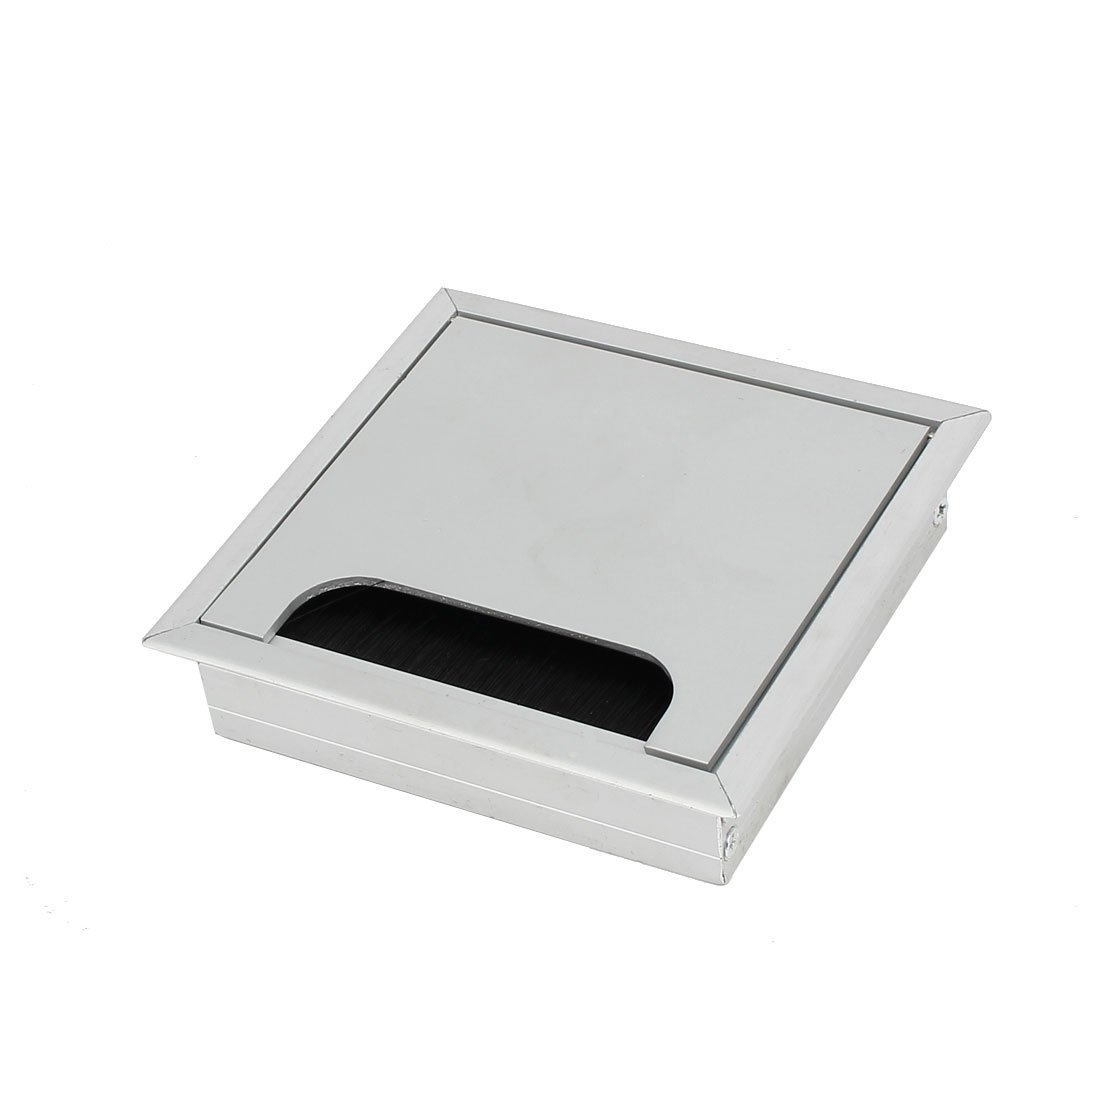 uxcell Computer Desk 120mmx120mm Aluminum Square Shape Grommet Wire Cable Hole Cover